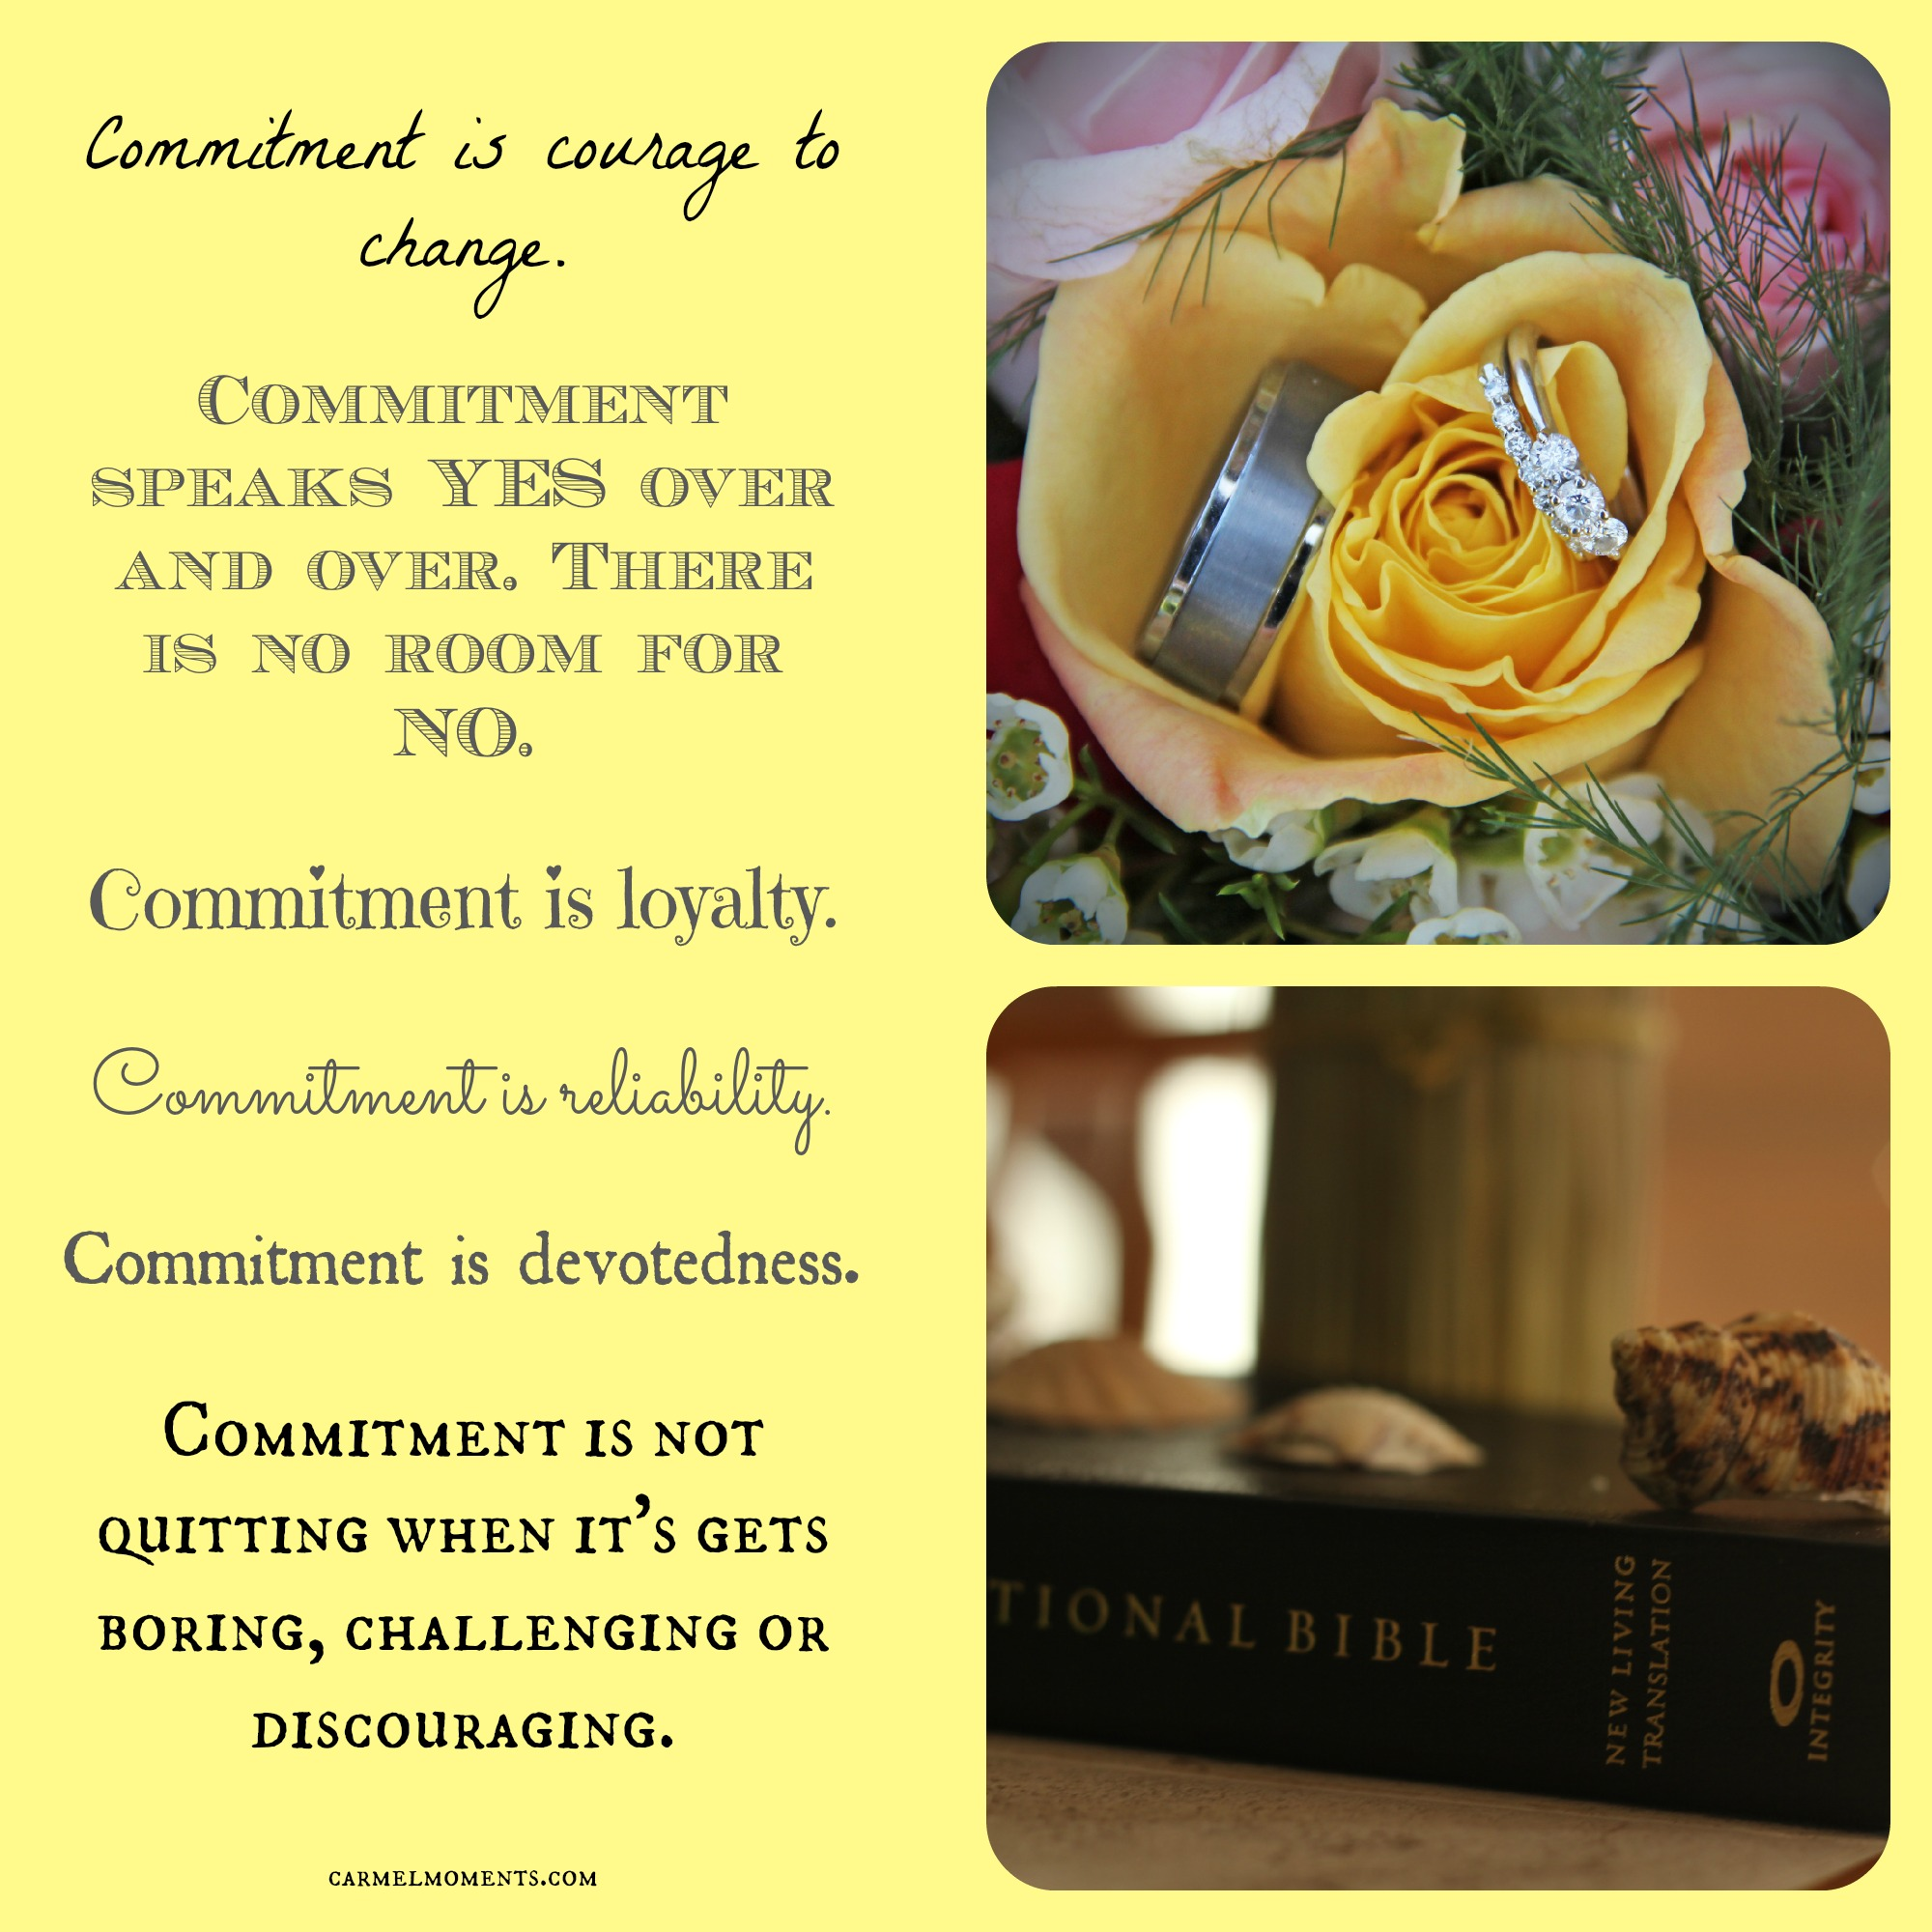 Commitment: What Does It Mean to You?